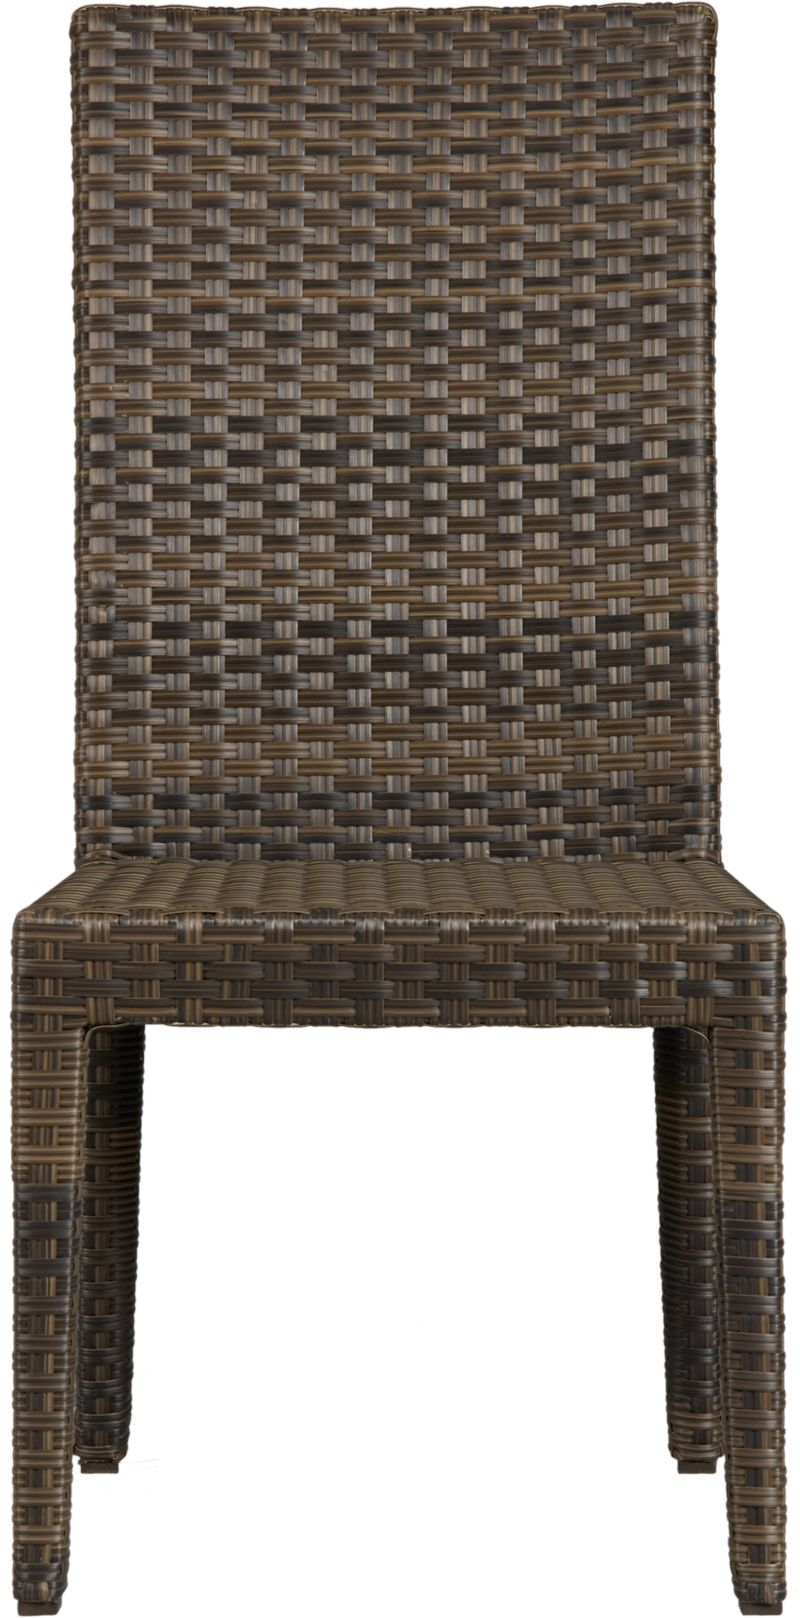 Ventura's comfortably pitched side chair offers a linear contemporary look in sturdy powdercoated aluminum, hand-wrapped in cool granite UV- and weather-resistant resin wicker with warm caramel overtones.<br /><br /><NEWTAG/><ul><li>UV-stabilized, fade-resistant, recyclable resin wicker</li><li>Aluminum frames with bronze powdercoat finish</li><li>Made in Indonesia</li></ul>